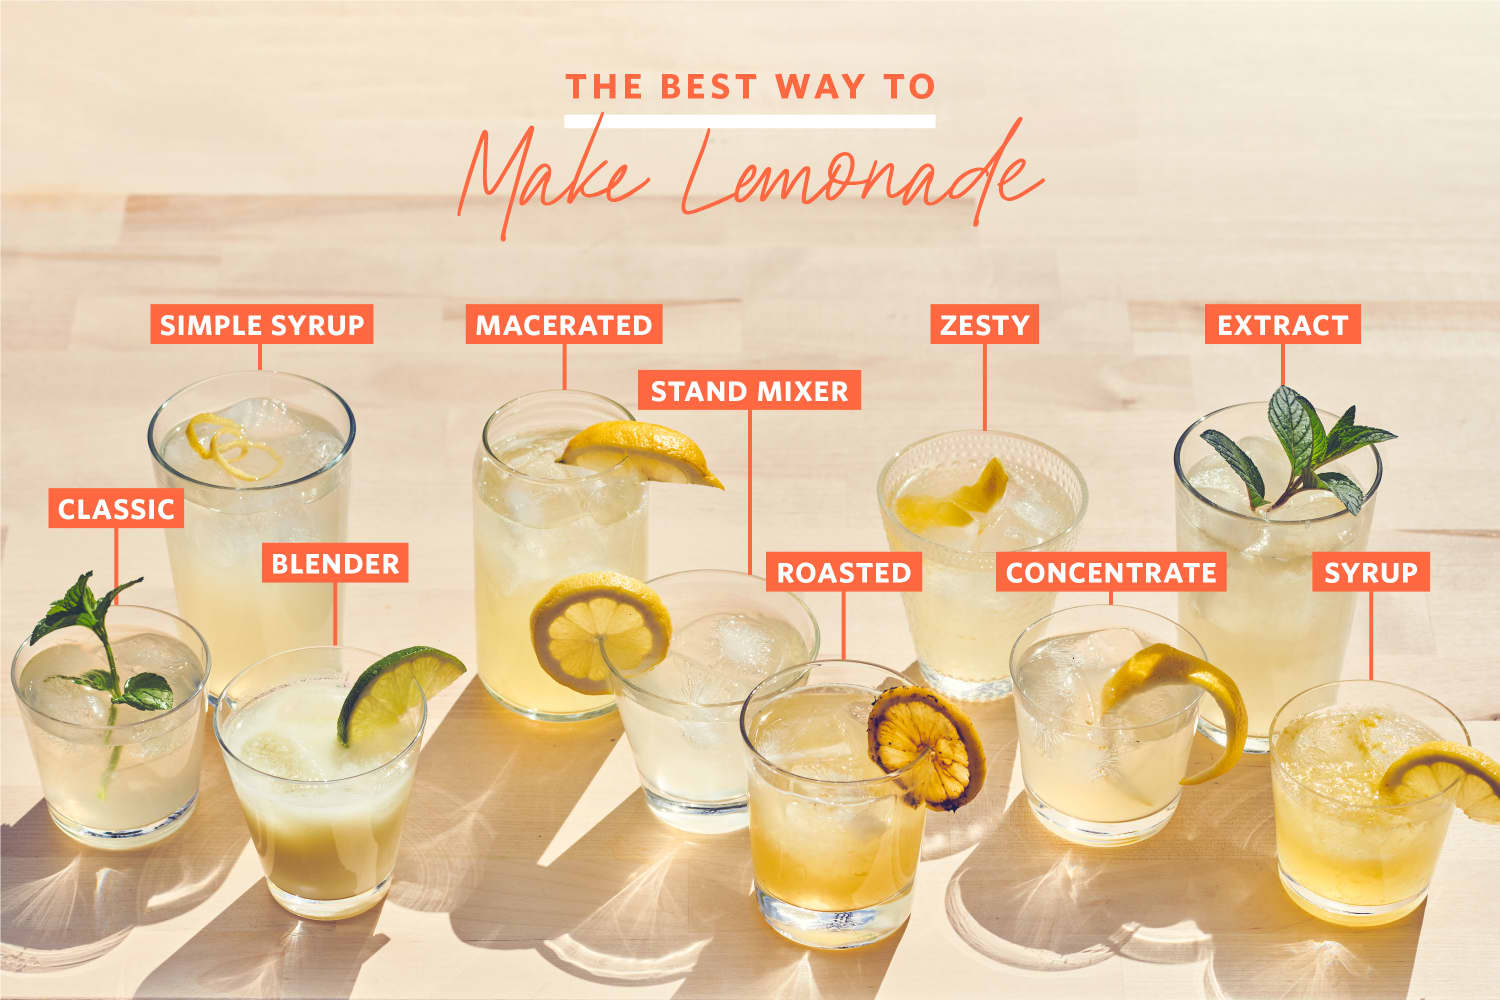 We Tried 10 Methods for Making Lemonade and Found One Clear Winner